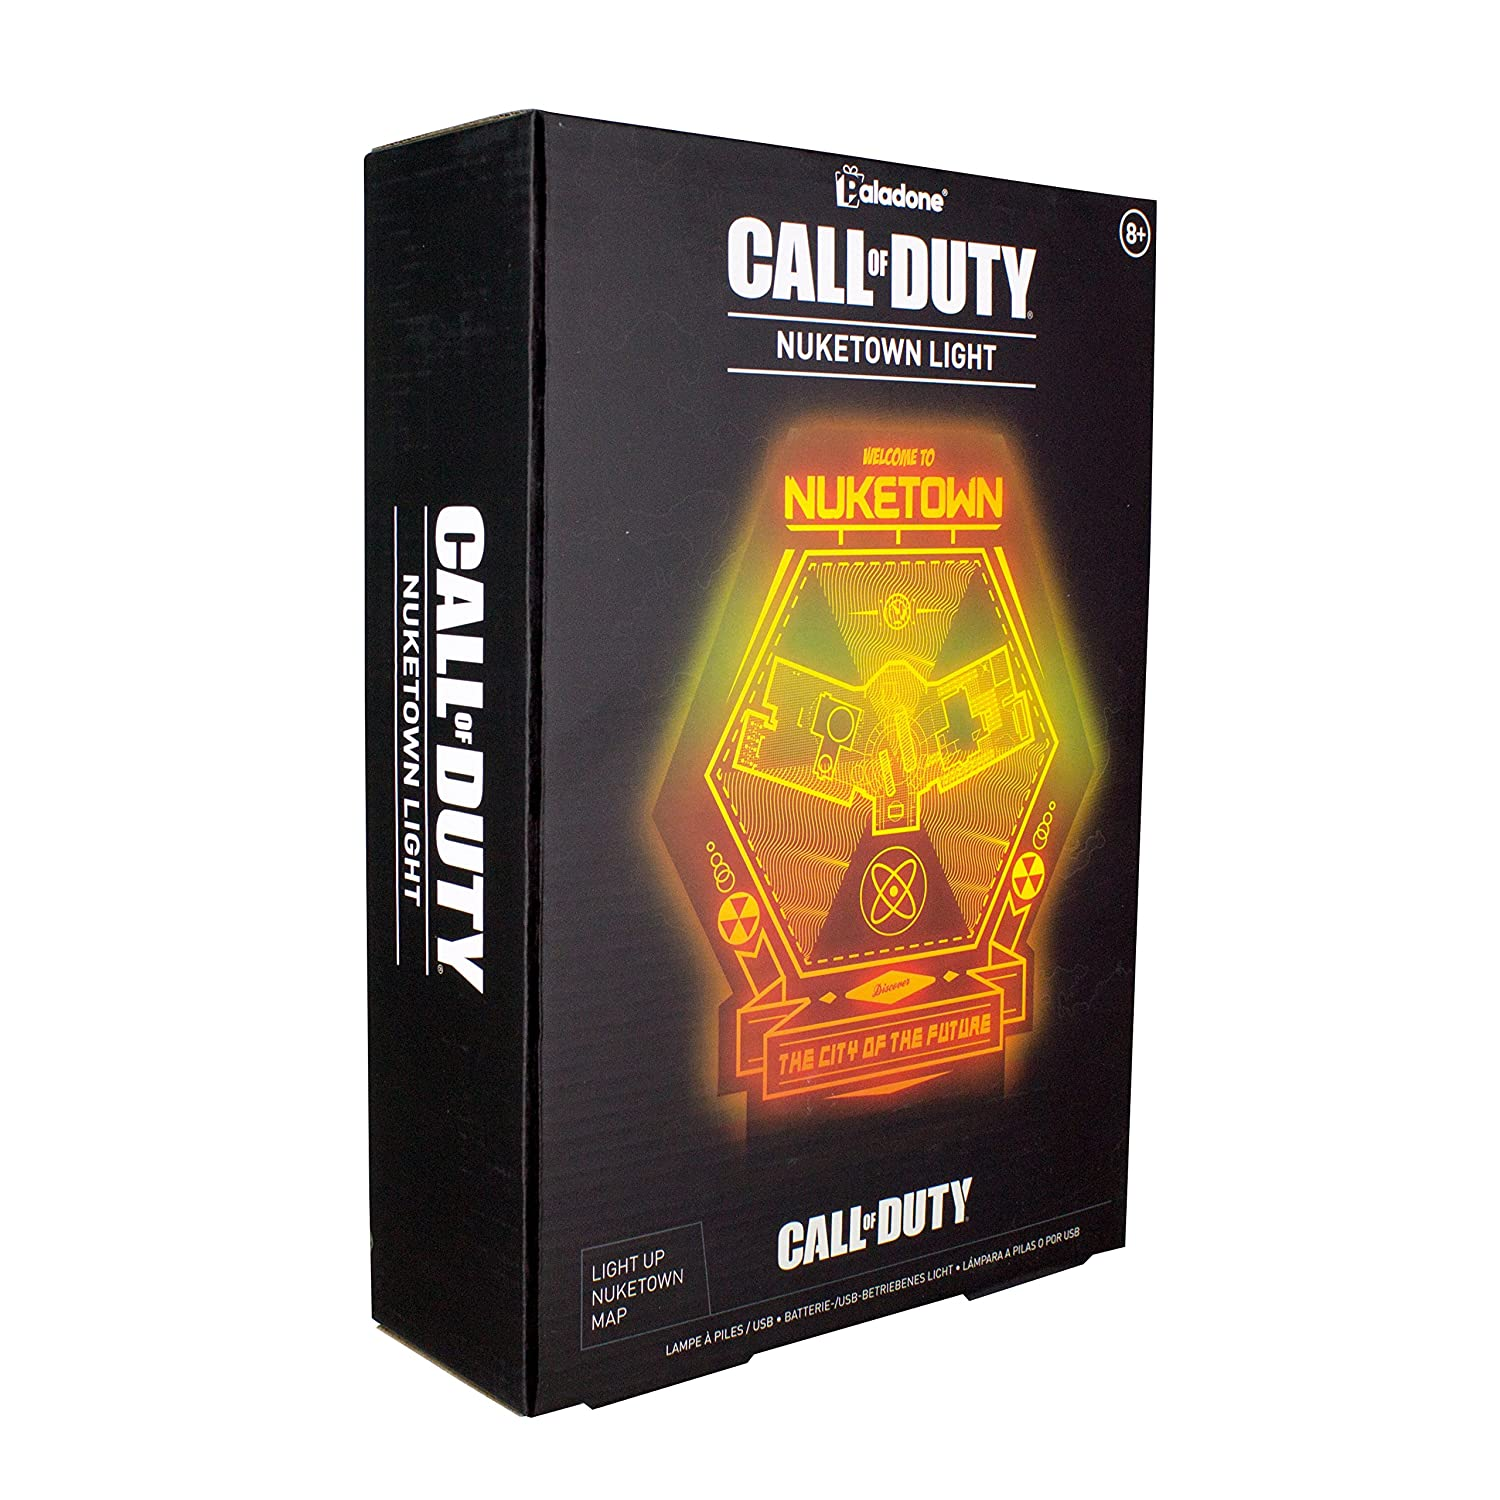 Official Call of Duty Nuketown Night Light Lamp Paladone Inc PP4069CODTX